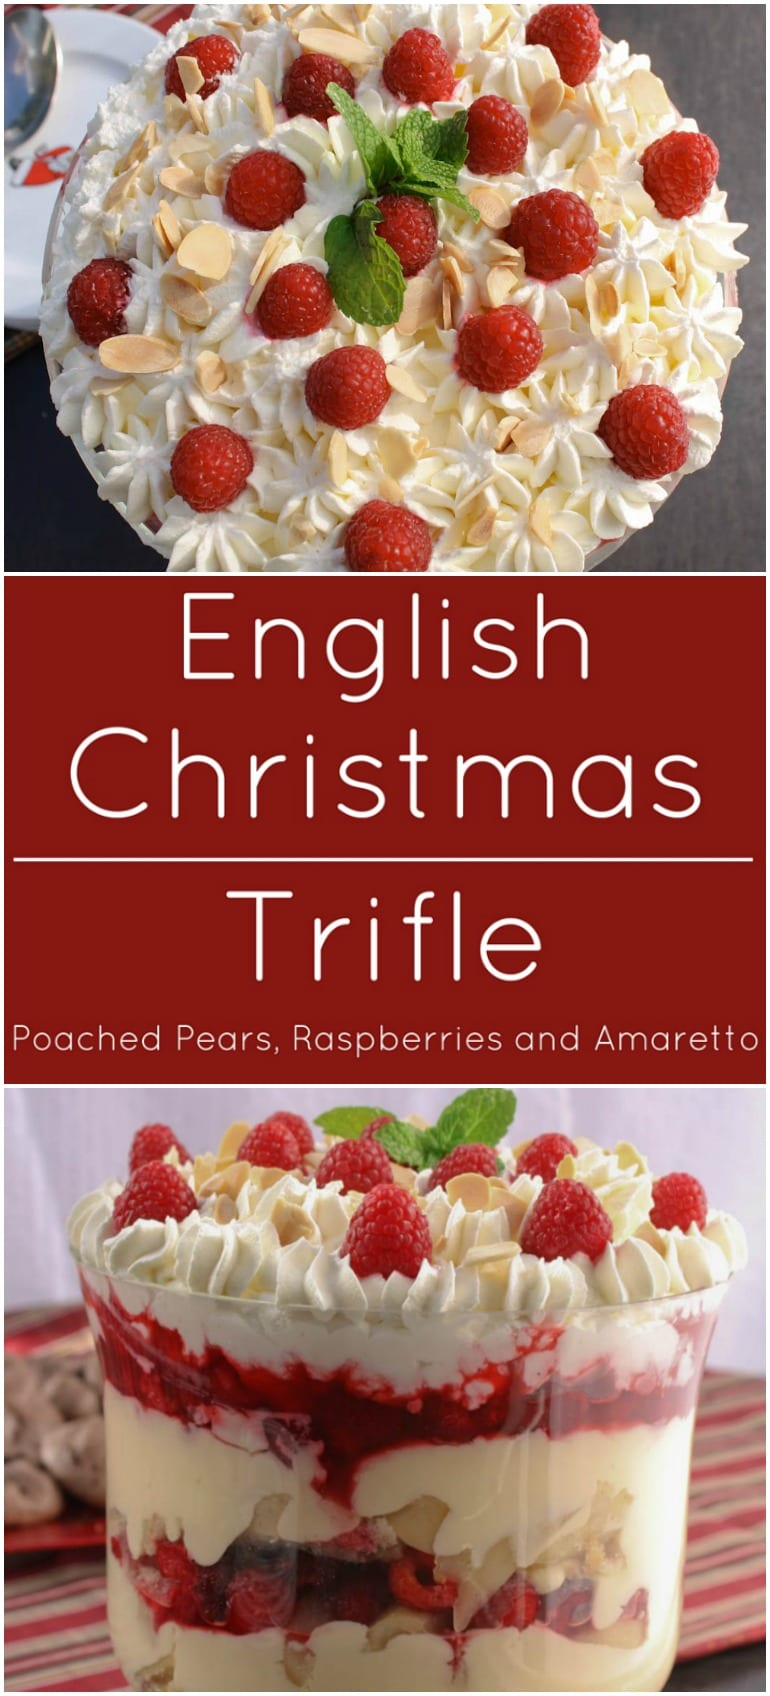 English Christmas Trifle with almond pound cake soaked with Amaretto ...